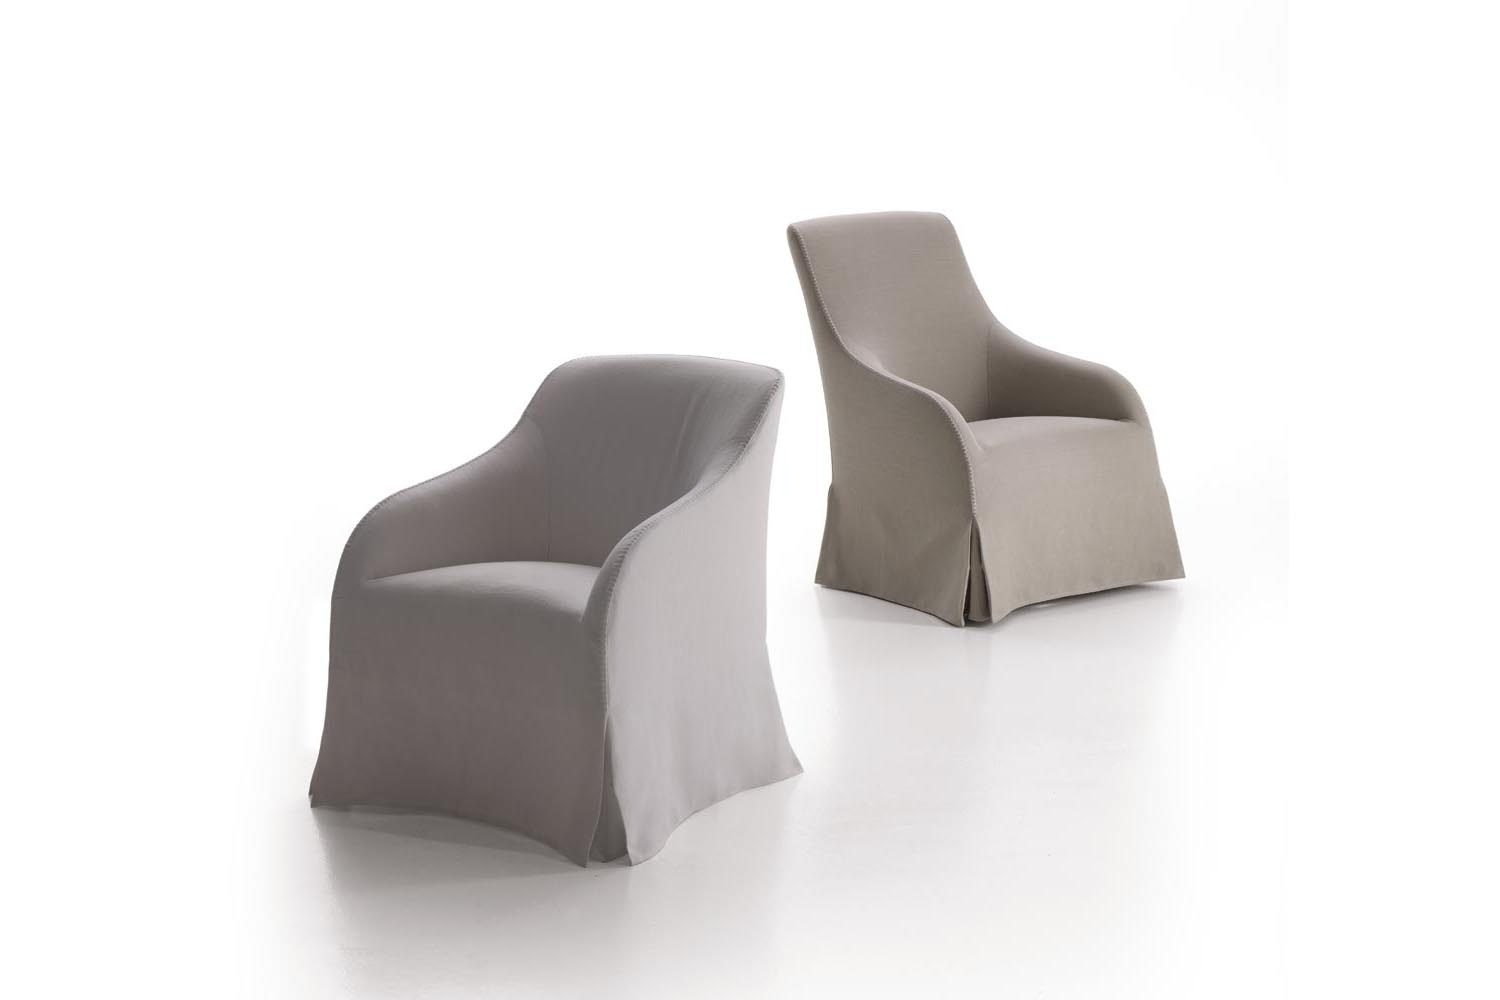 Agathos Armchair by Antonio Citterio for Maxalto